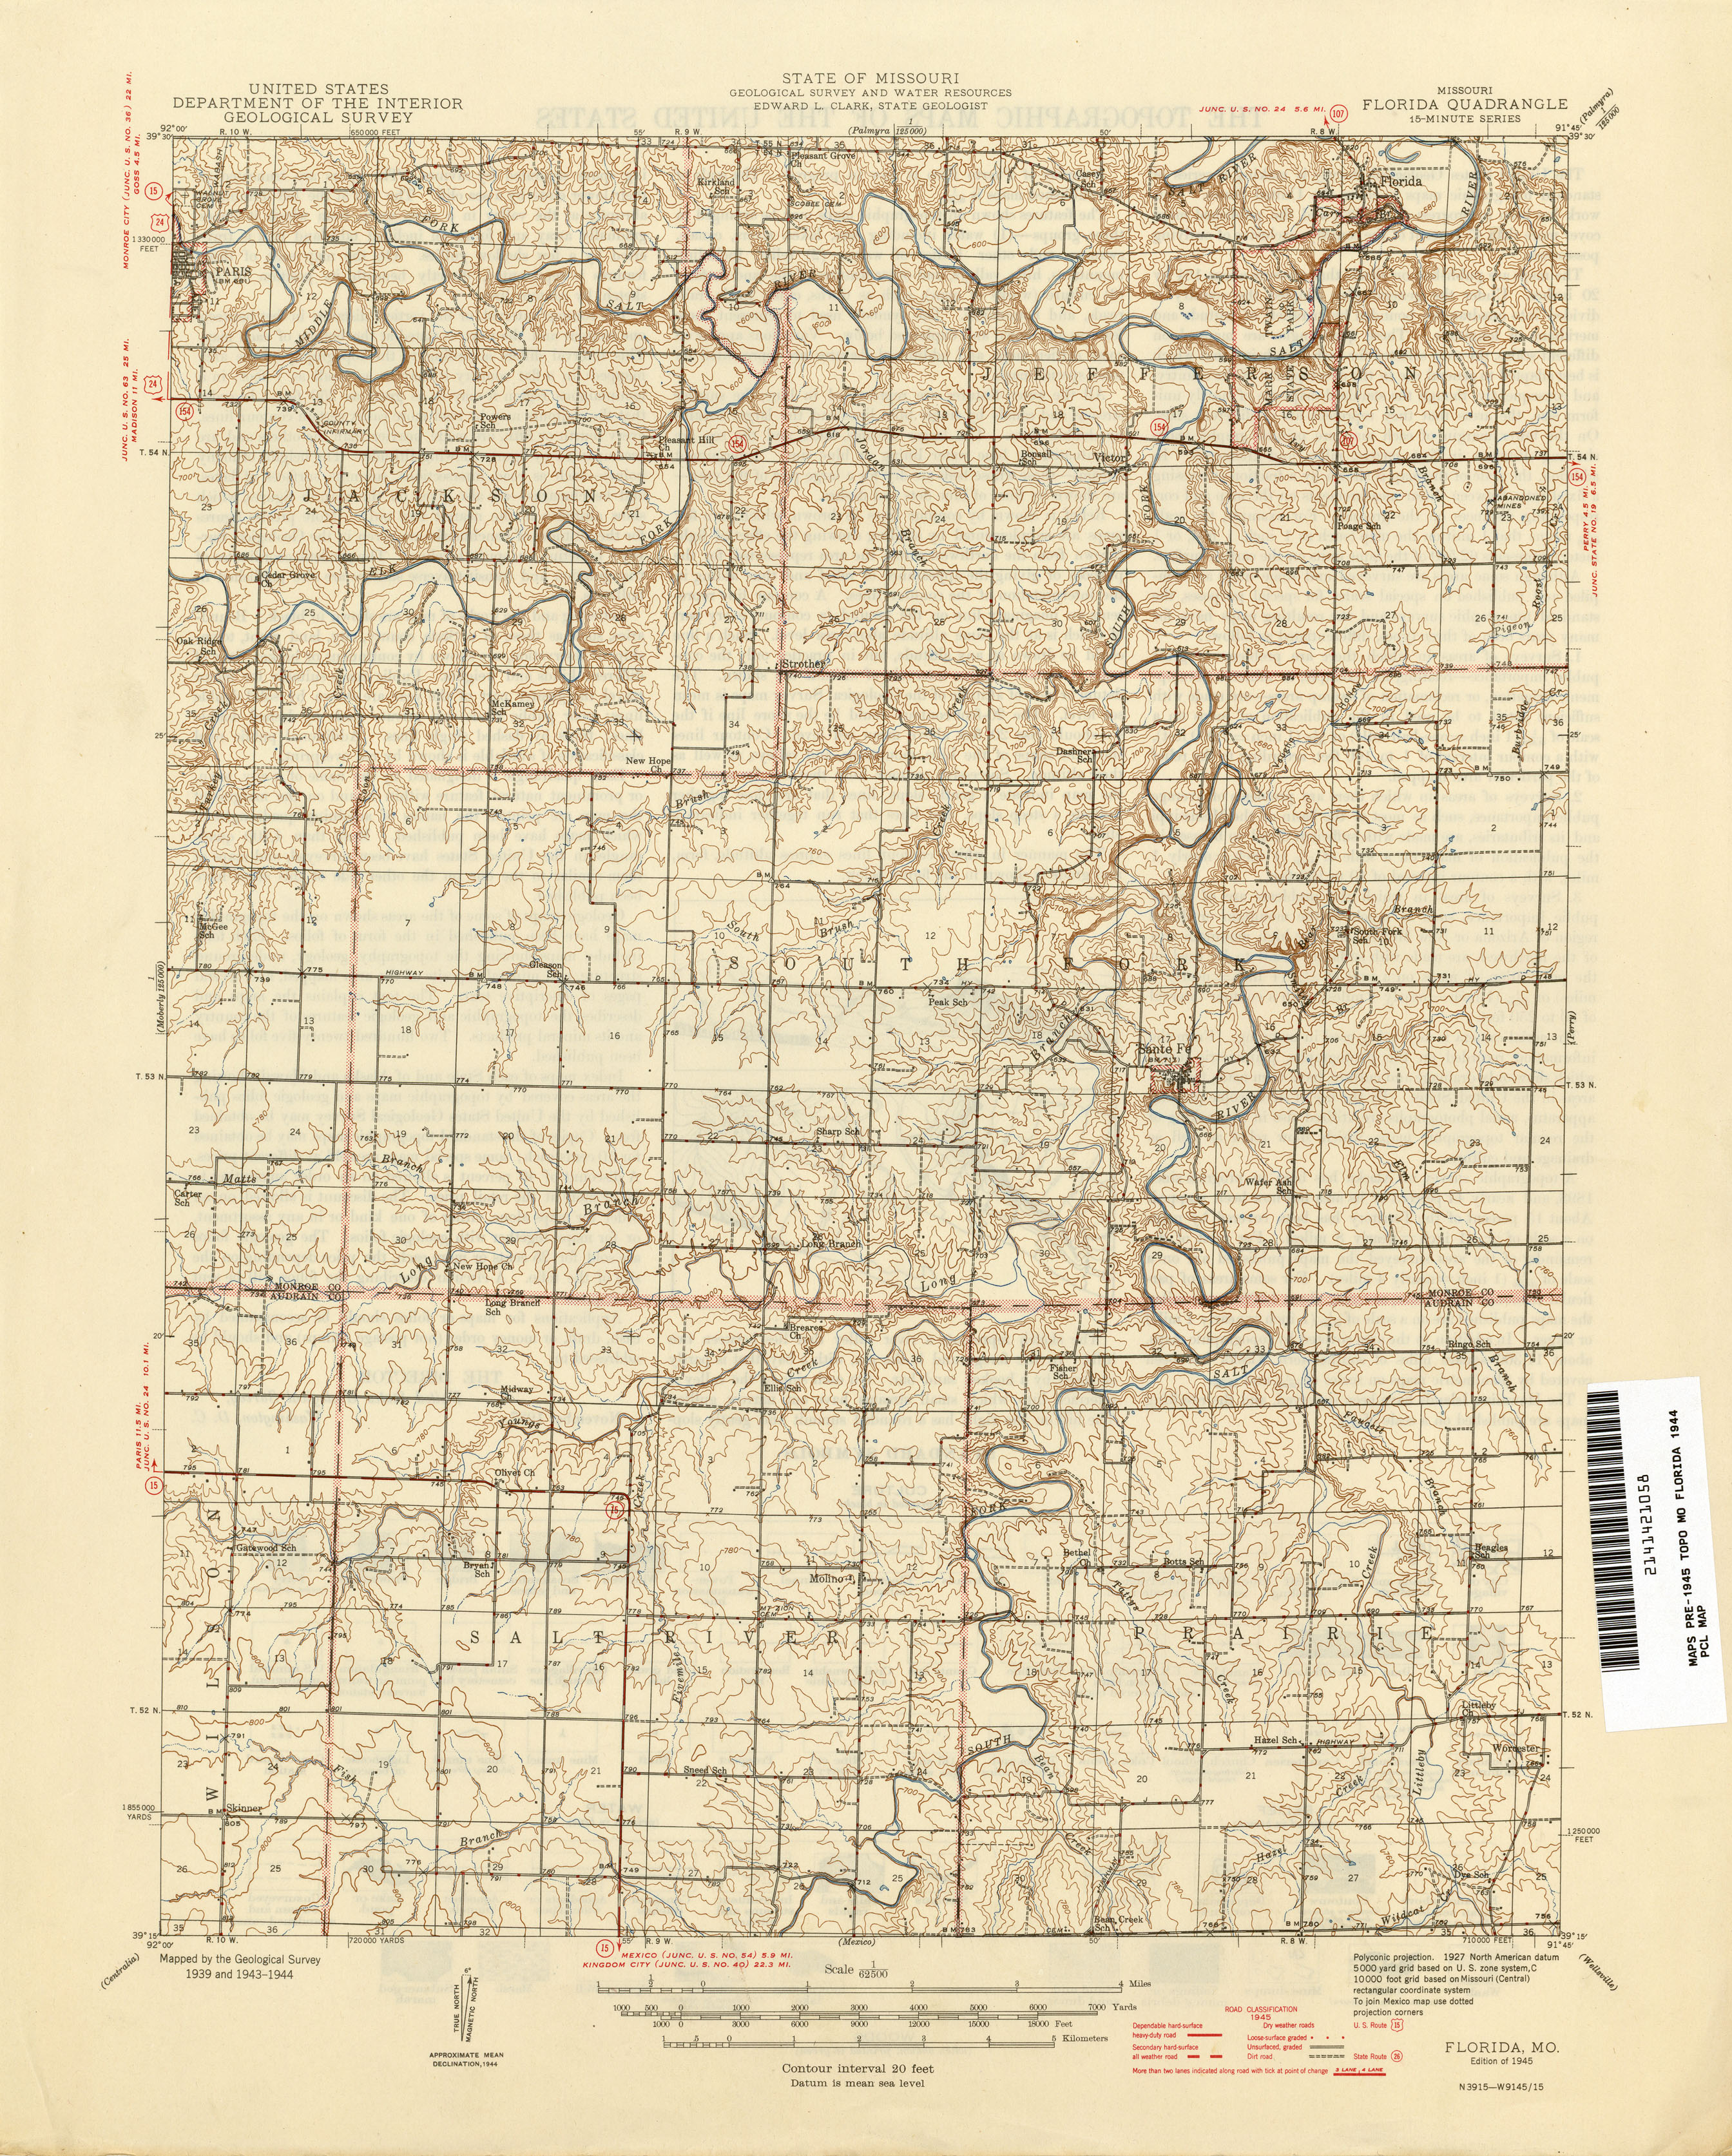 Missouri Historical Topographic Maps - Perry-Castañeda Map ... on independence missouri zip code map, ferguson missouri on us map, branson missouri on us map, wentzville missouri on us map, columbia missouri on us map, joplin missouri on us map, fenton missouri on us map, niagara falls usa map, springfield missouri on us map, warrensburg missouri on us map, independence missouri on the map, independence missouri street map,